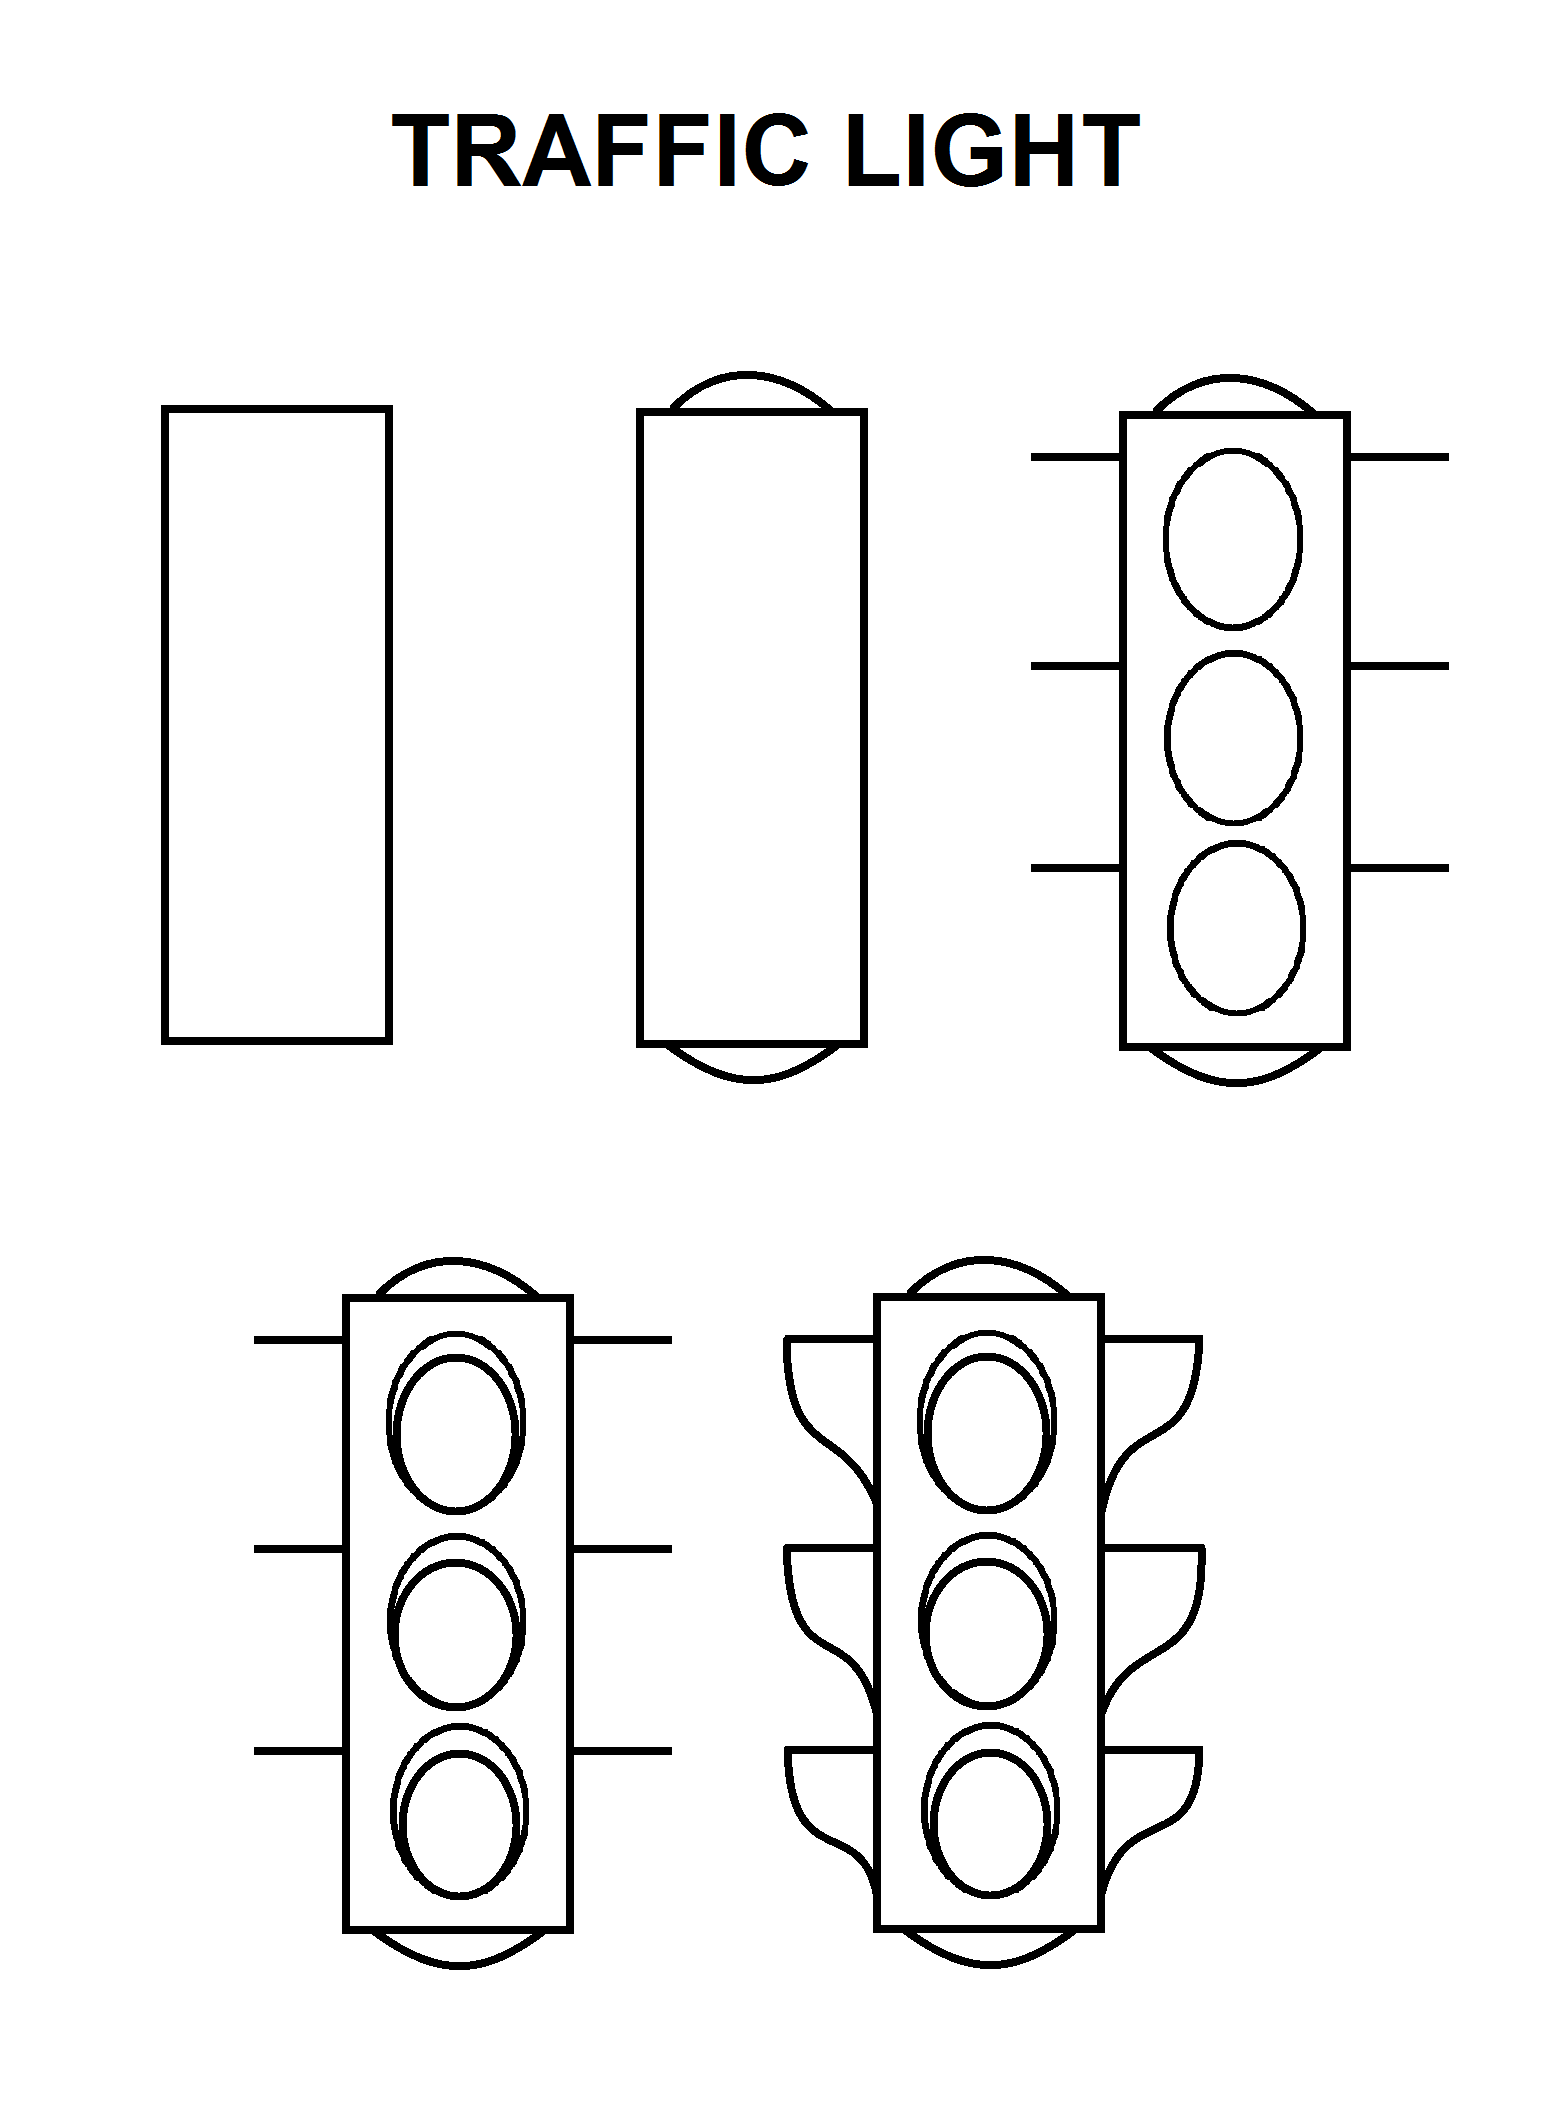 Step By Step To Draw A Traffic Light